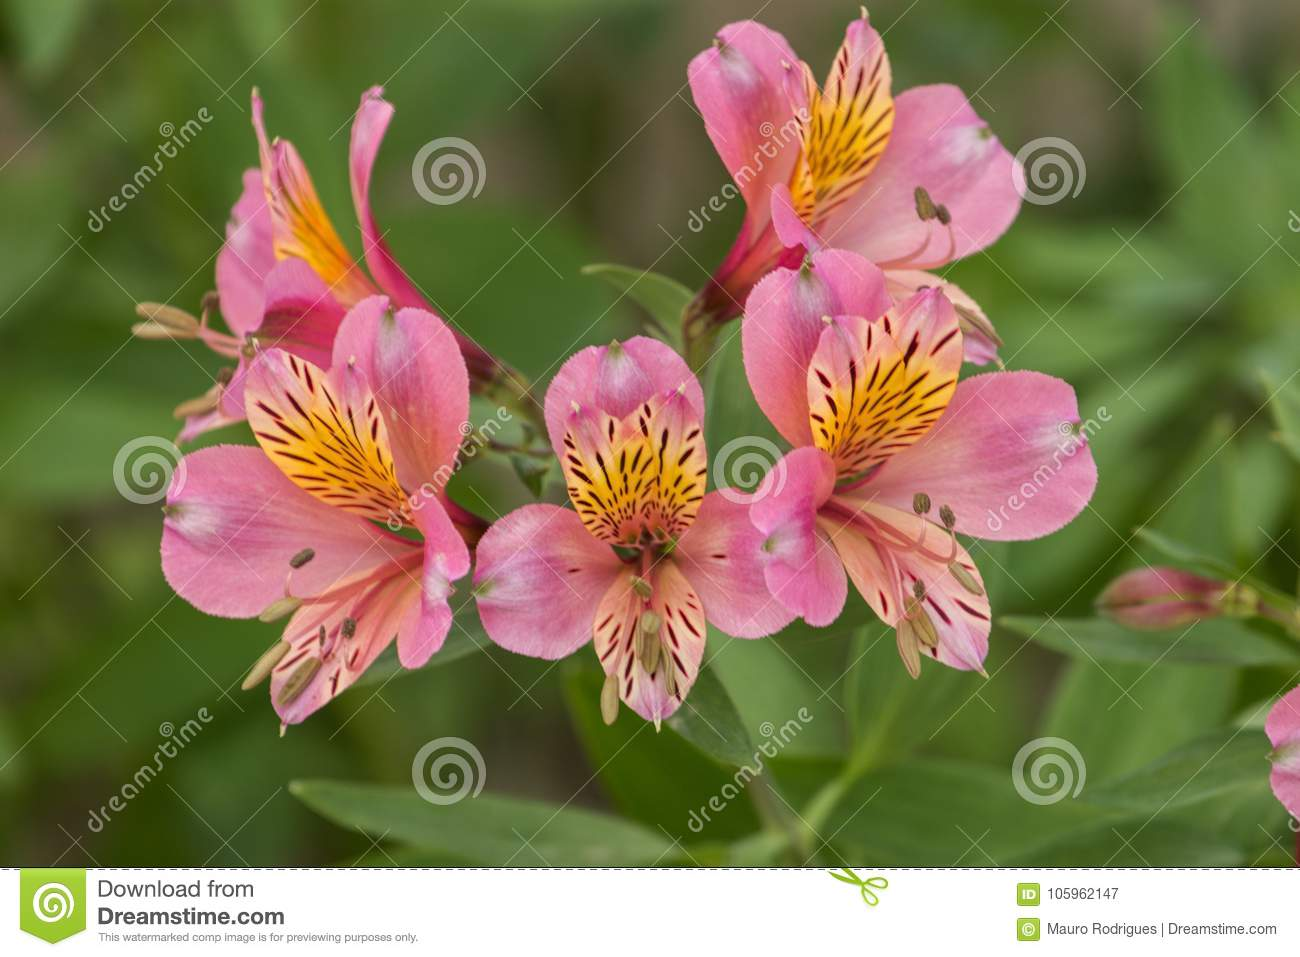 Peruvian Lily Alstroemeria Stock Image Image Of Leaf Bright 105962147